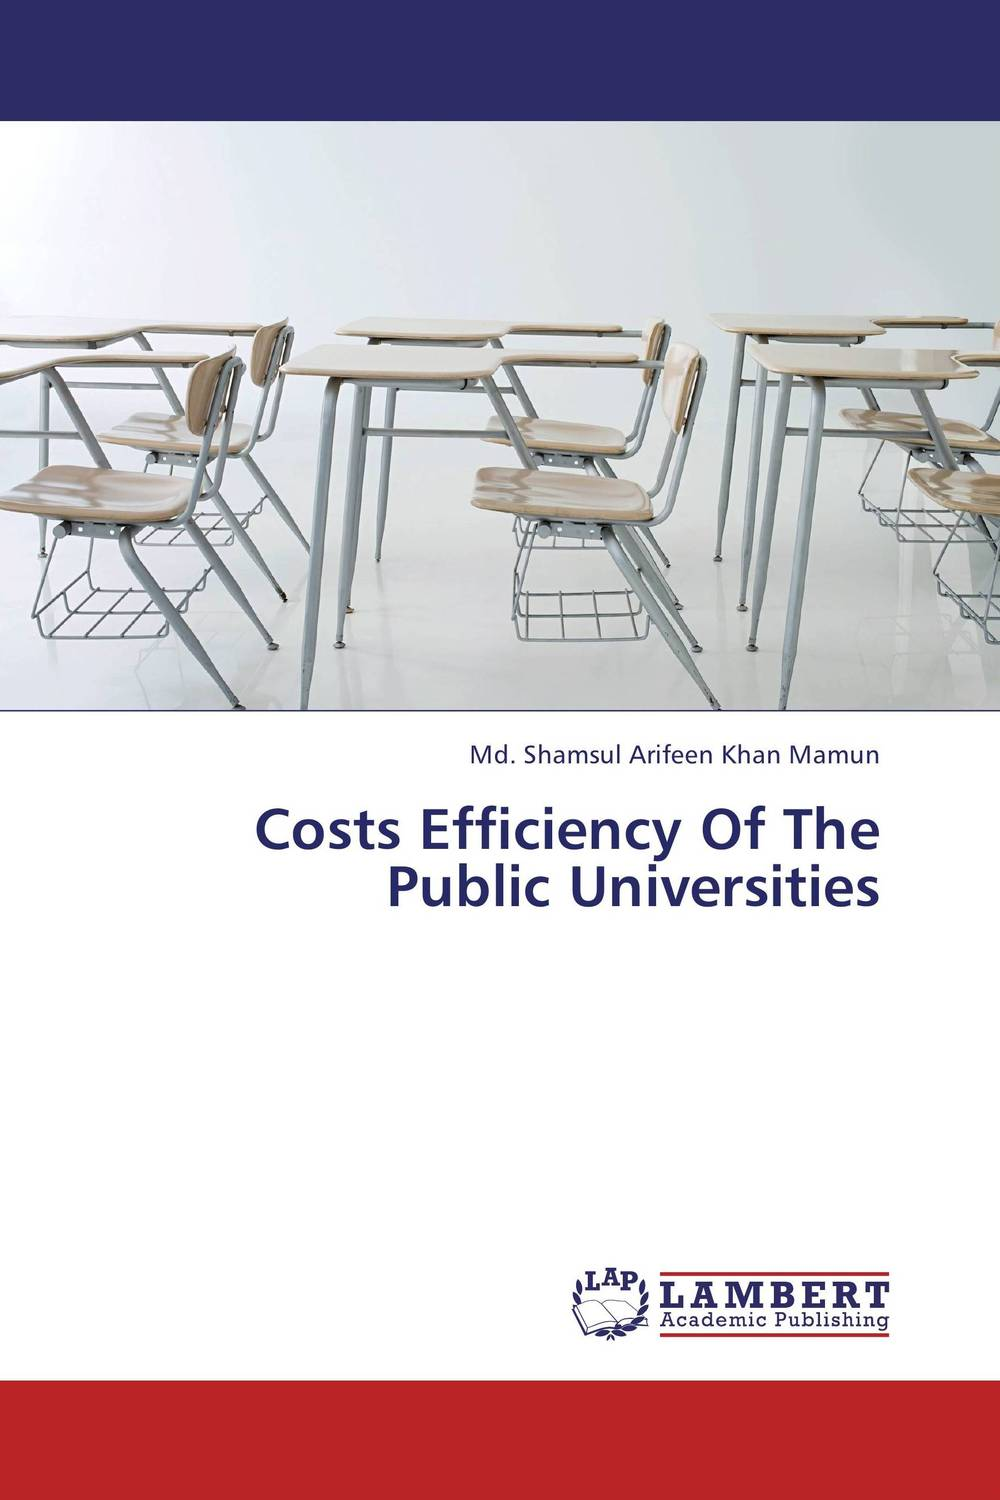 купить Costs Efficiency Of The Public Universities недорого